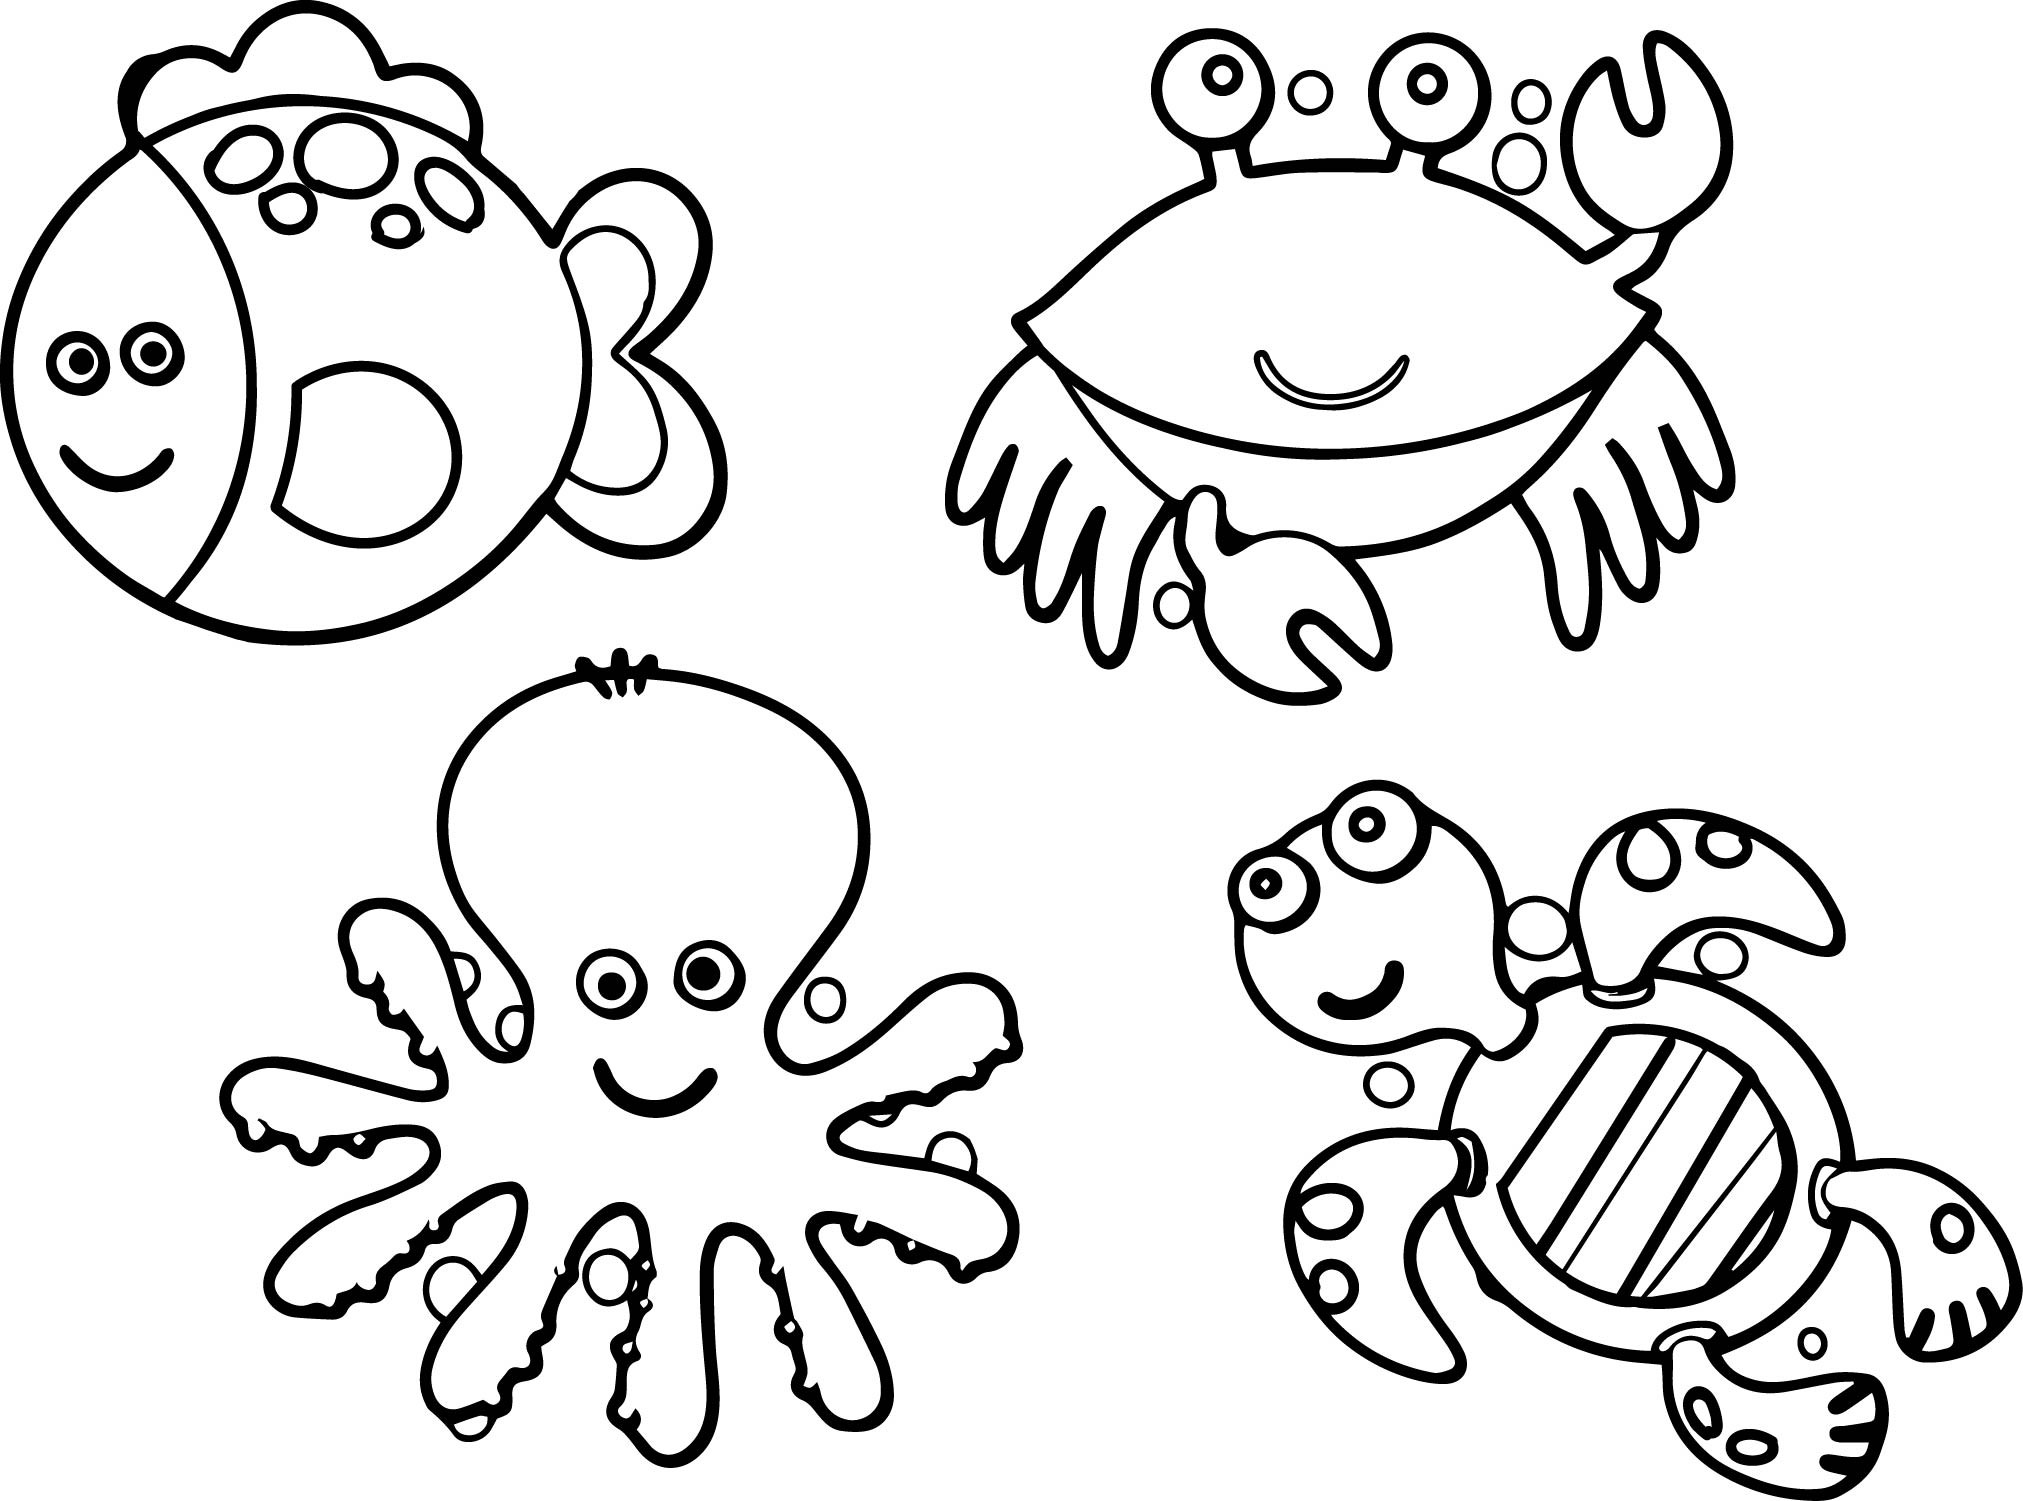 2023x1501 Coloring Pages Animals Coloring Pages Coloring Pages Of Animals